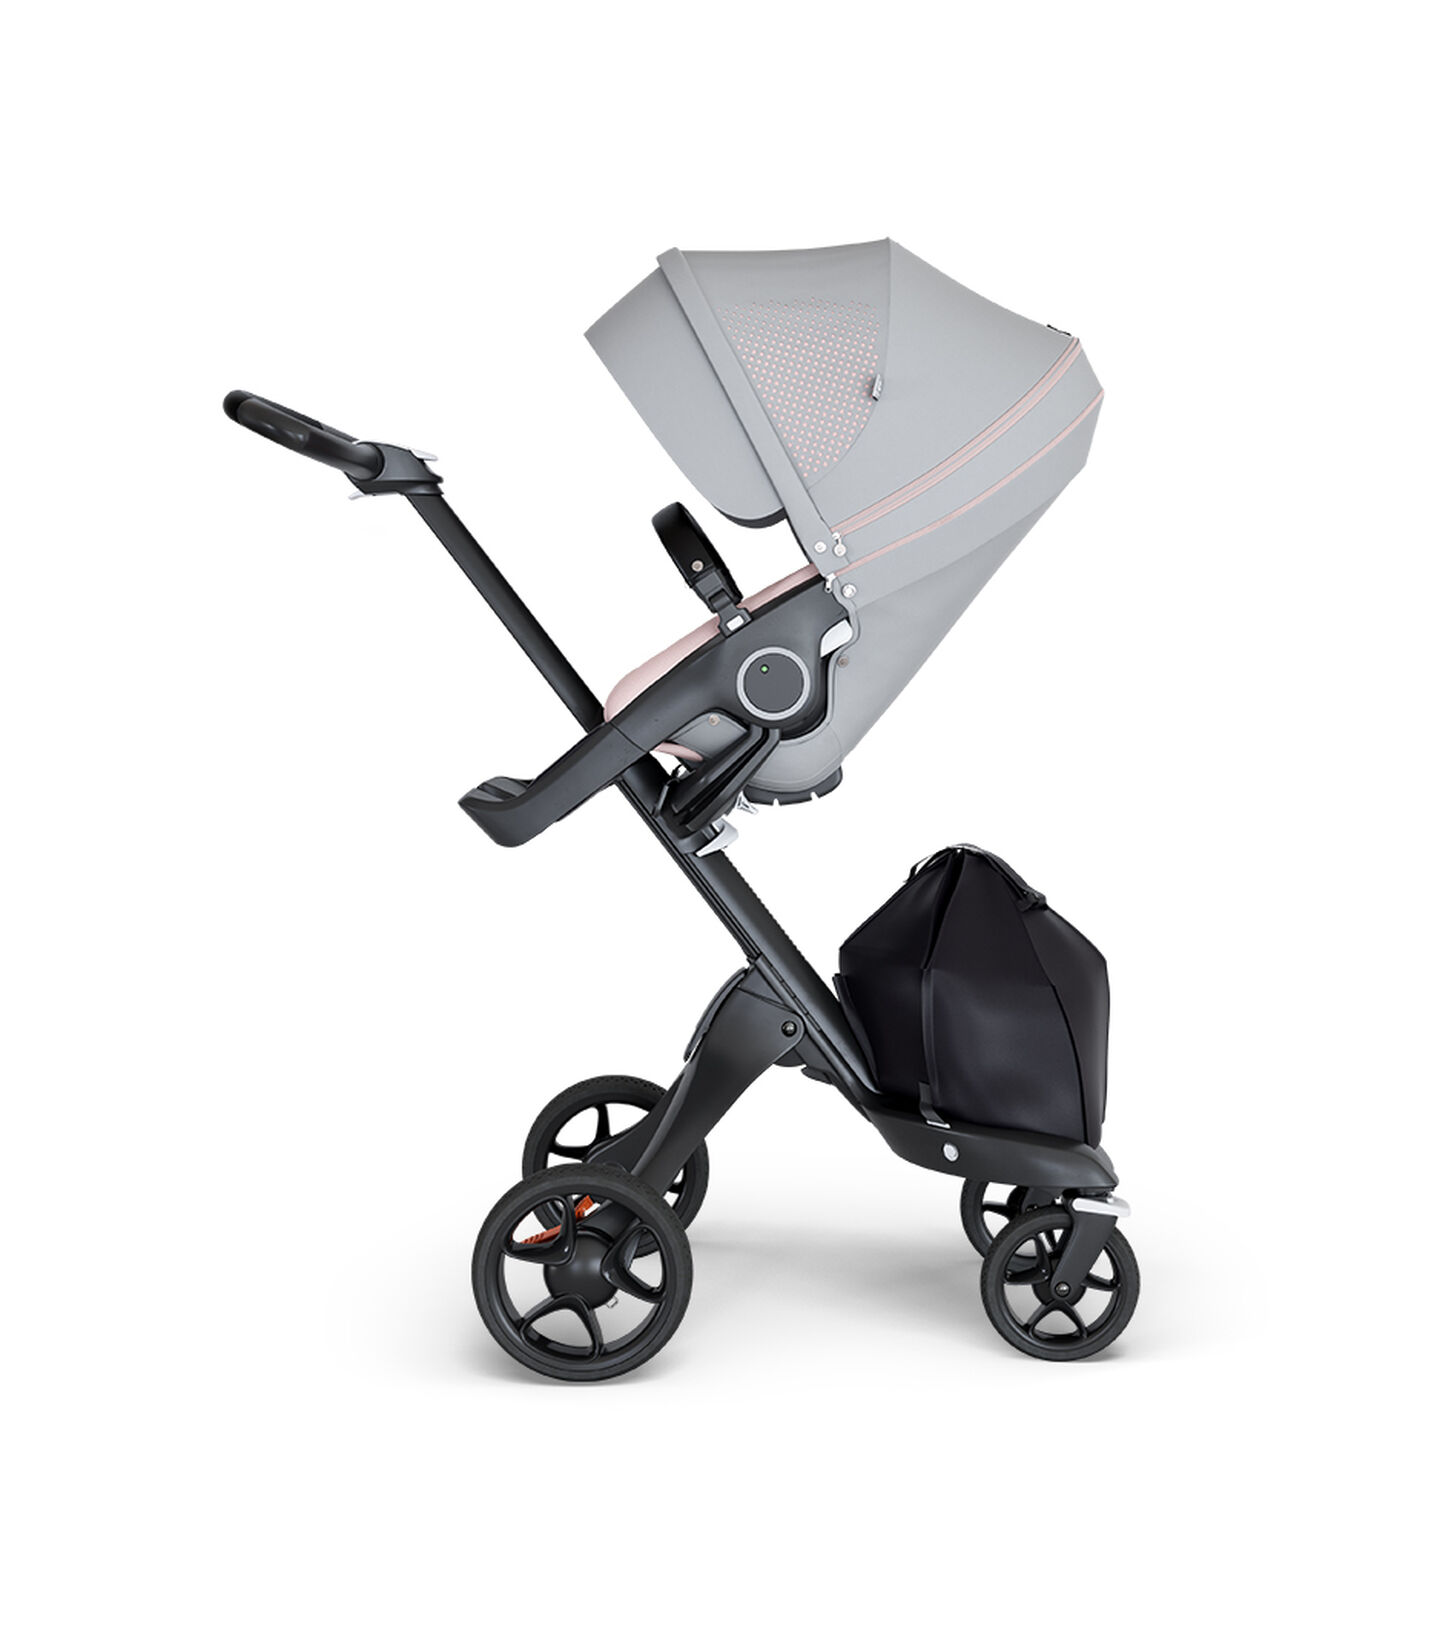 Stokke® Xplory® wtih Black Chassis and Leatherette Black handle. Stokke® Stroller Seat Athleisure Pink.